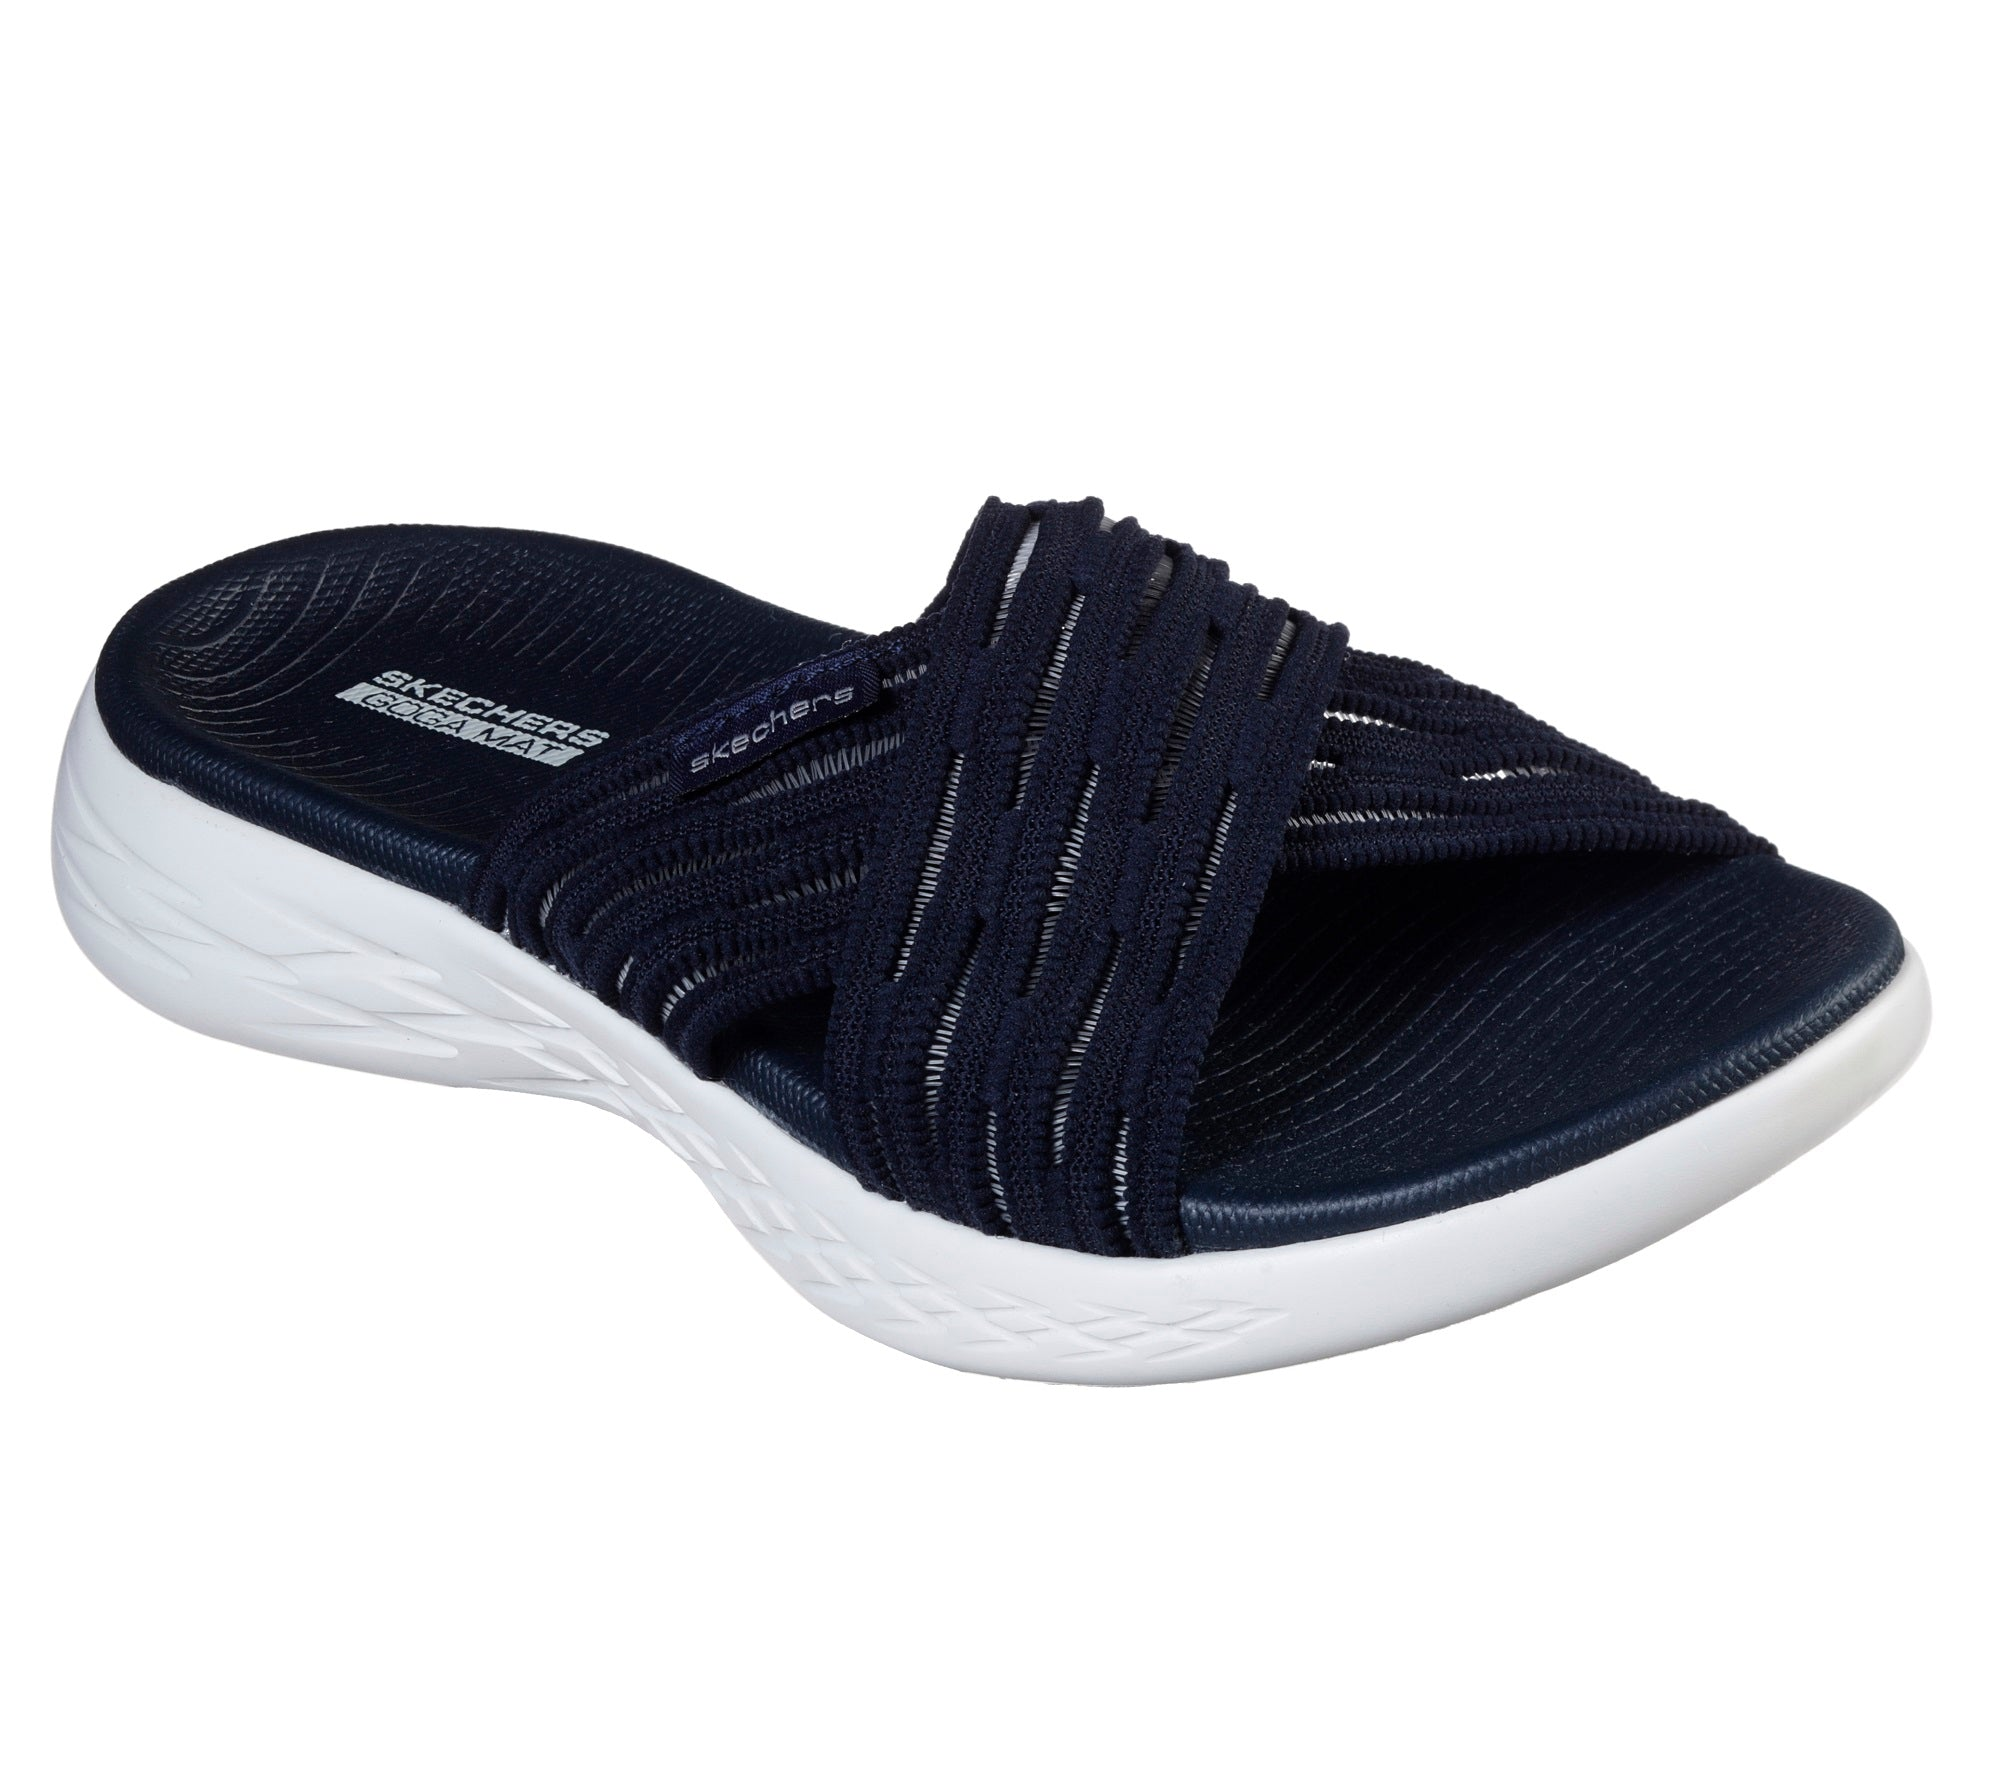 SKECHERS GO - LADIES SUNRISE OTG 600 16167